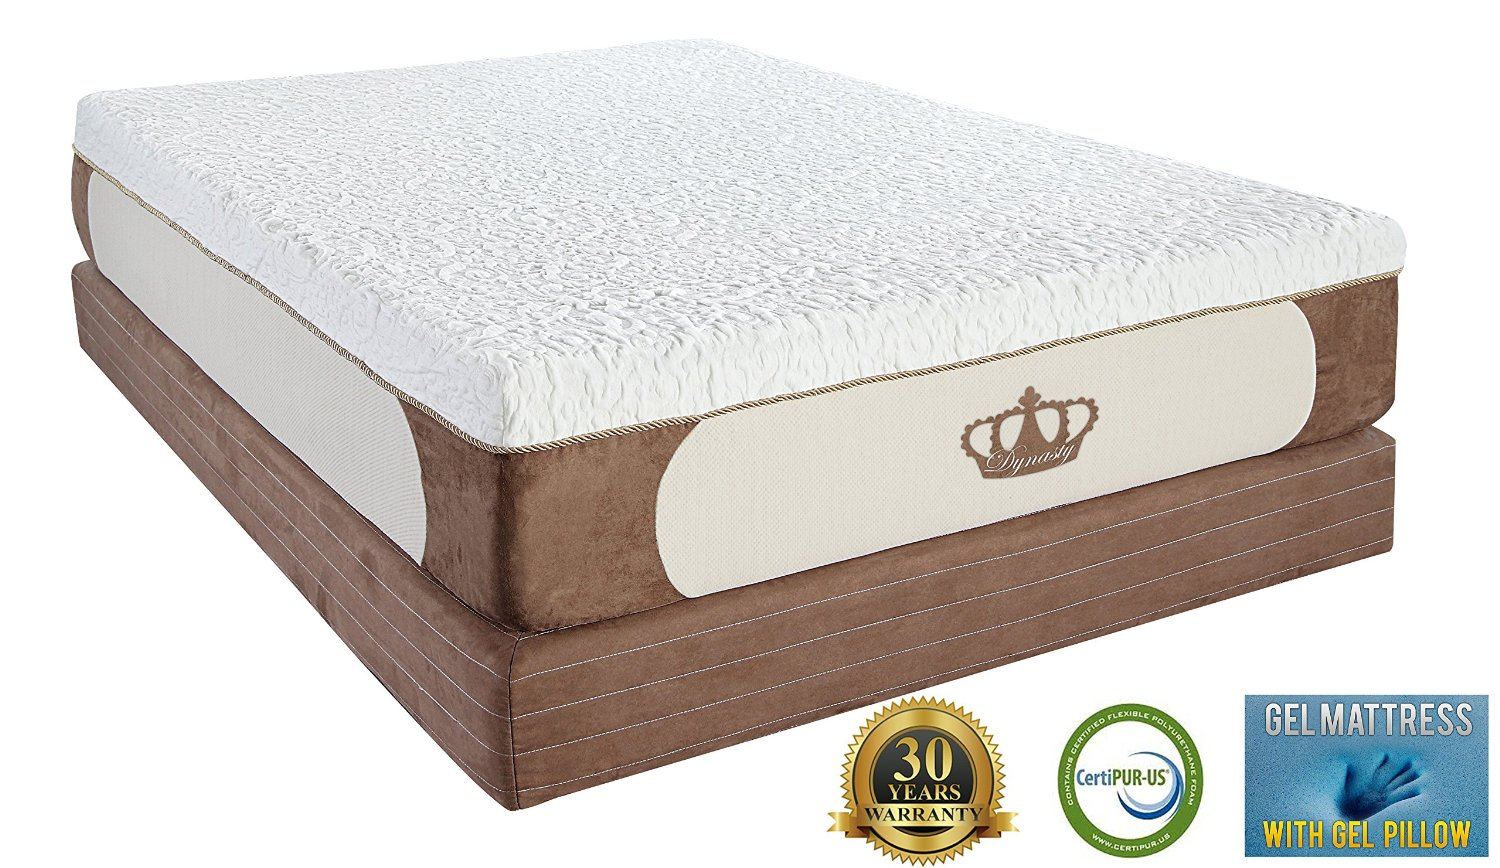 Best Memory Foam Mattress DynastyMattress Cool Breeze 12-Inch